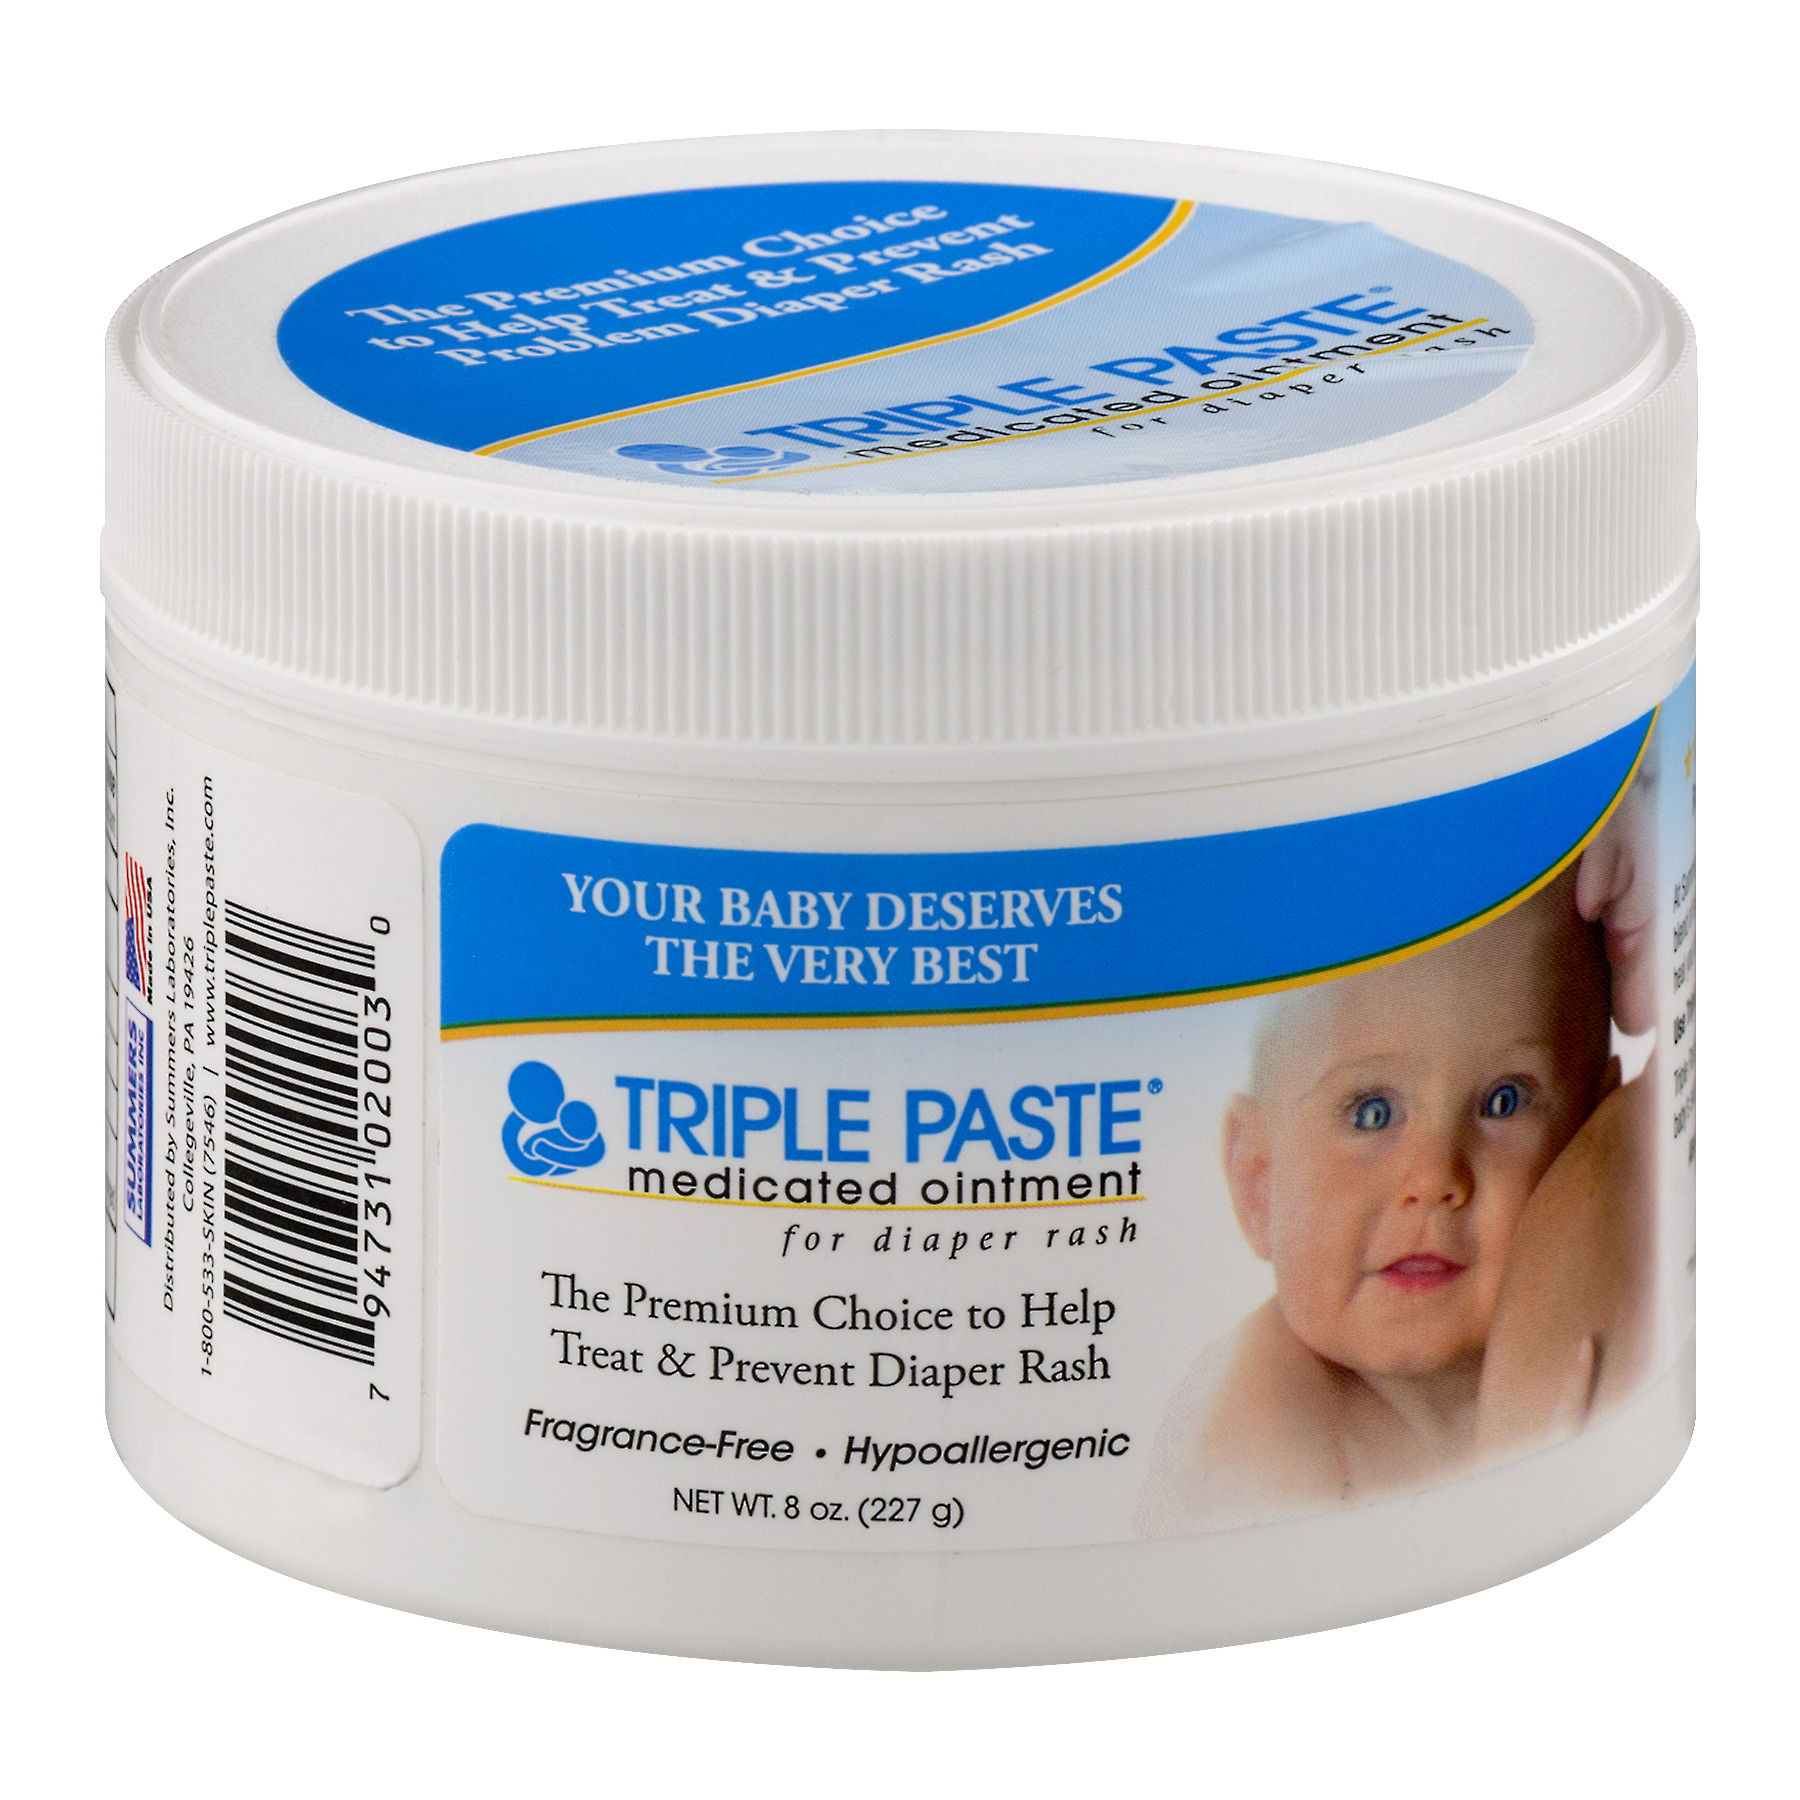 Triple Paste Medicated Ointment for Diaper Rash, 8 oz by Triple Paste